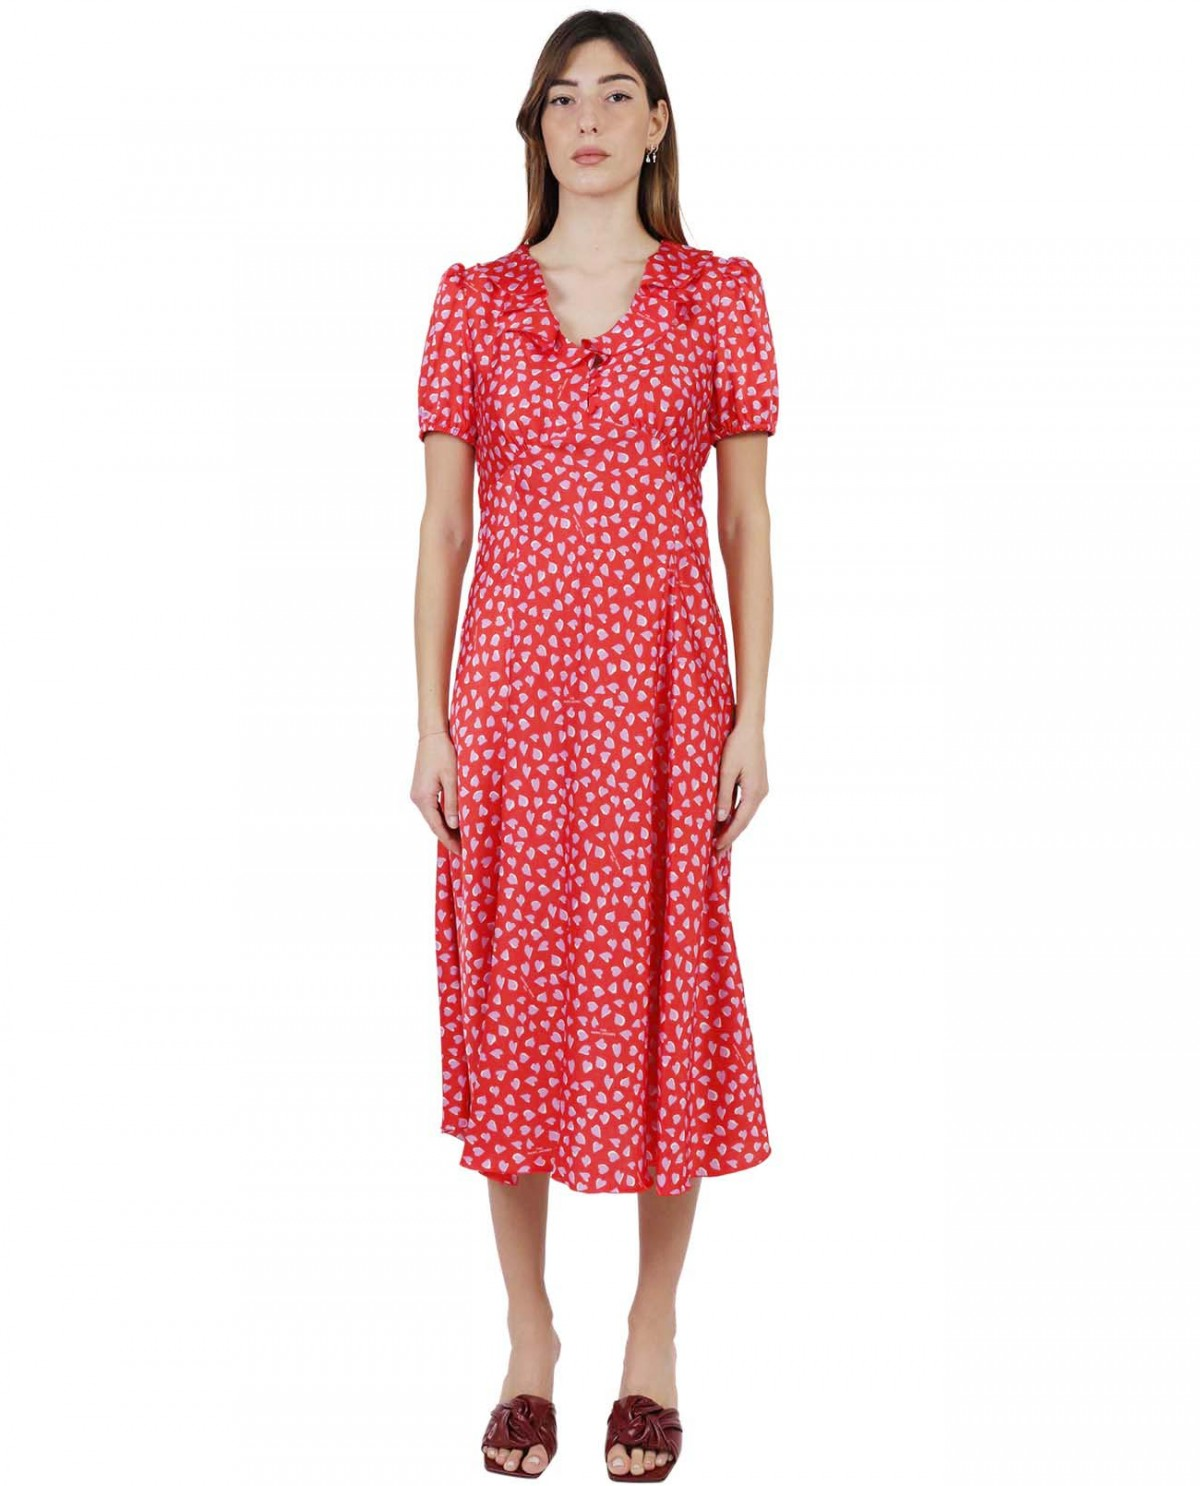 The Marc Jacobs red Love dress